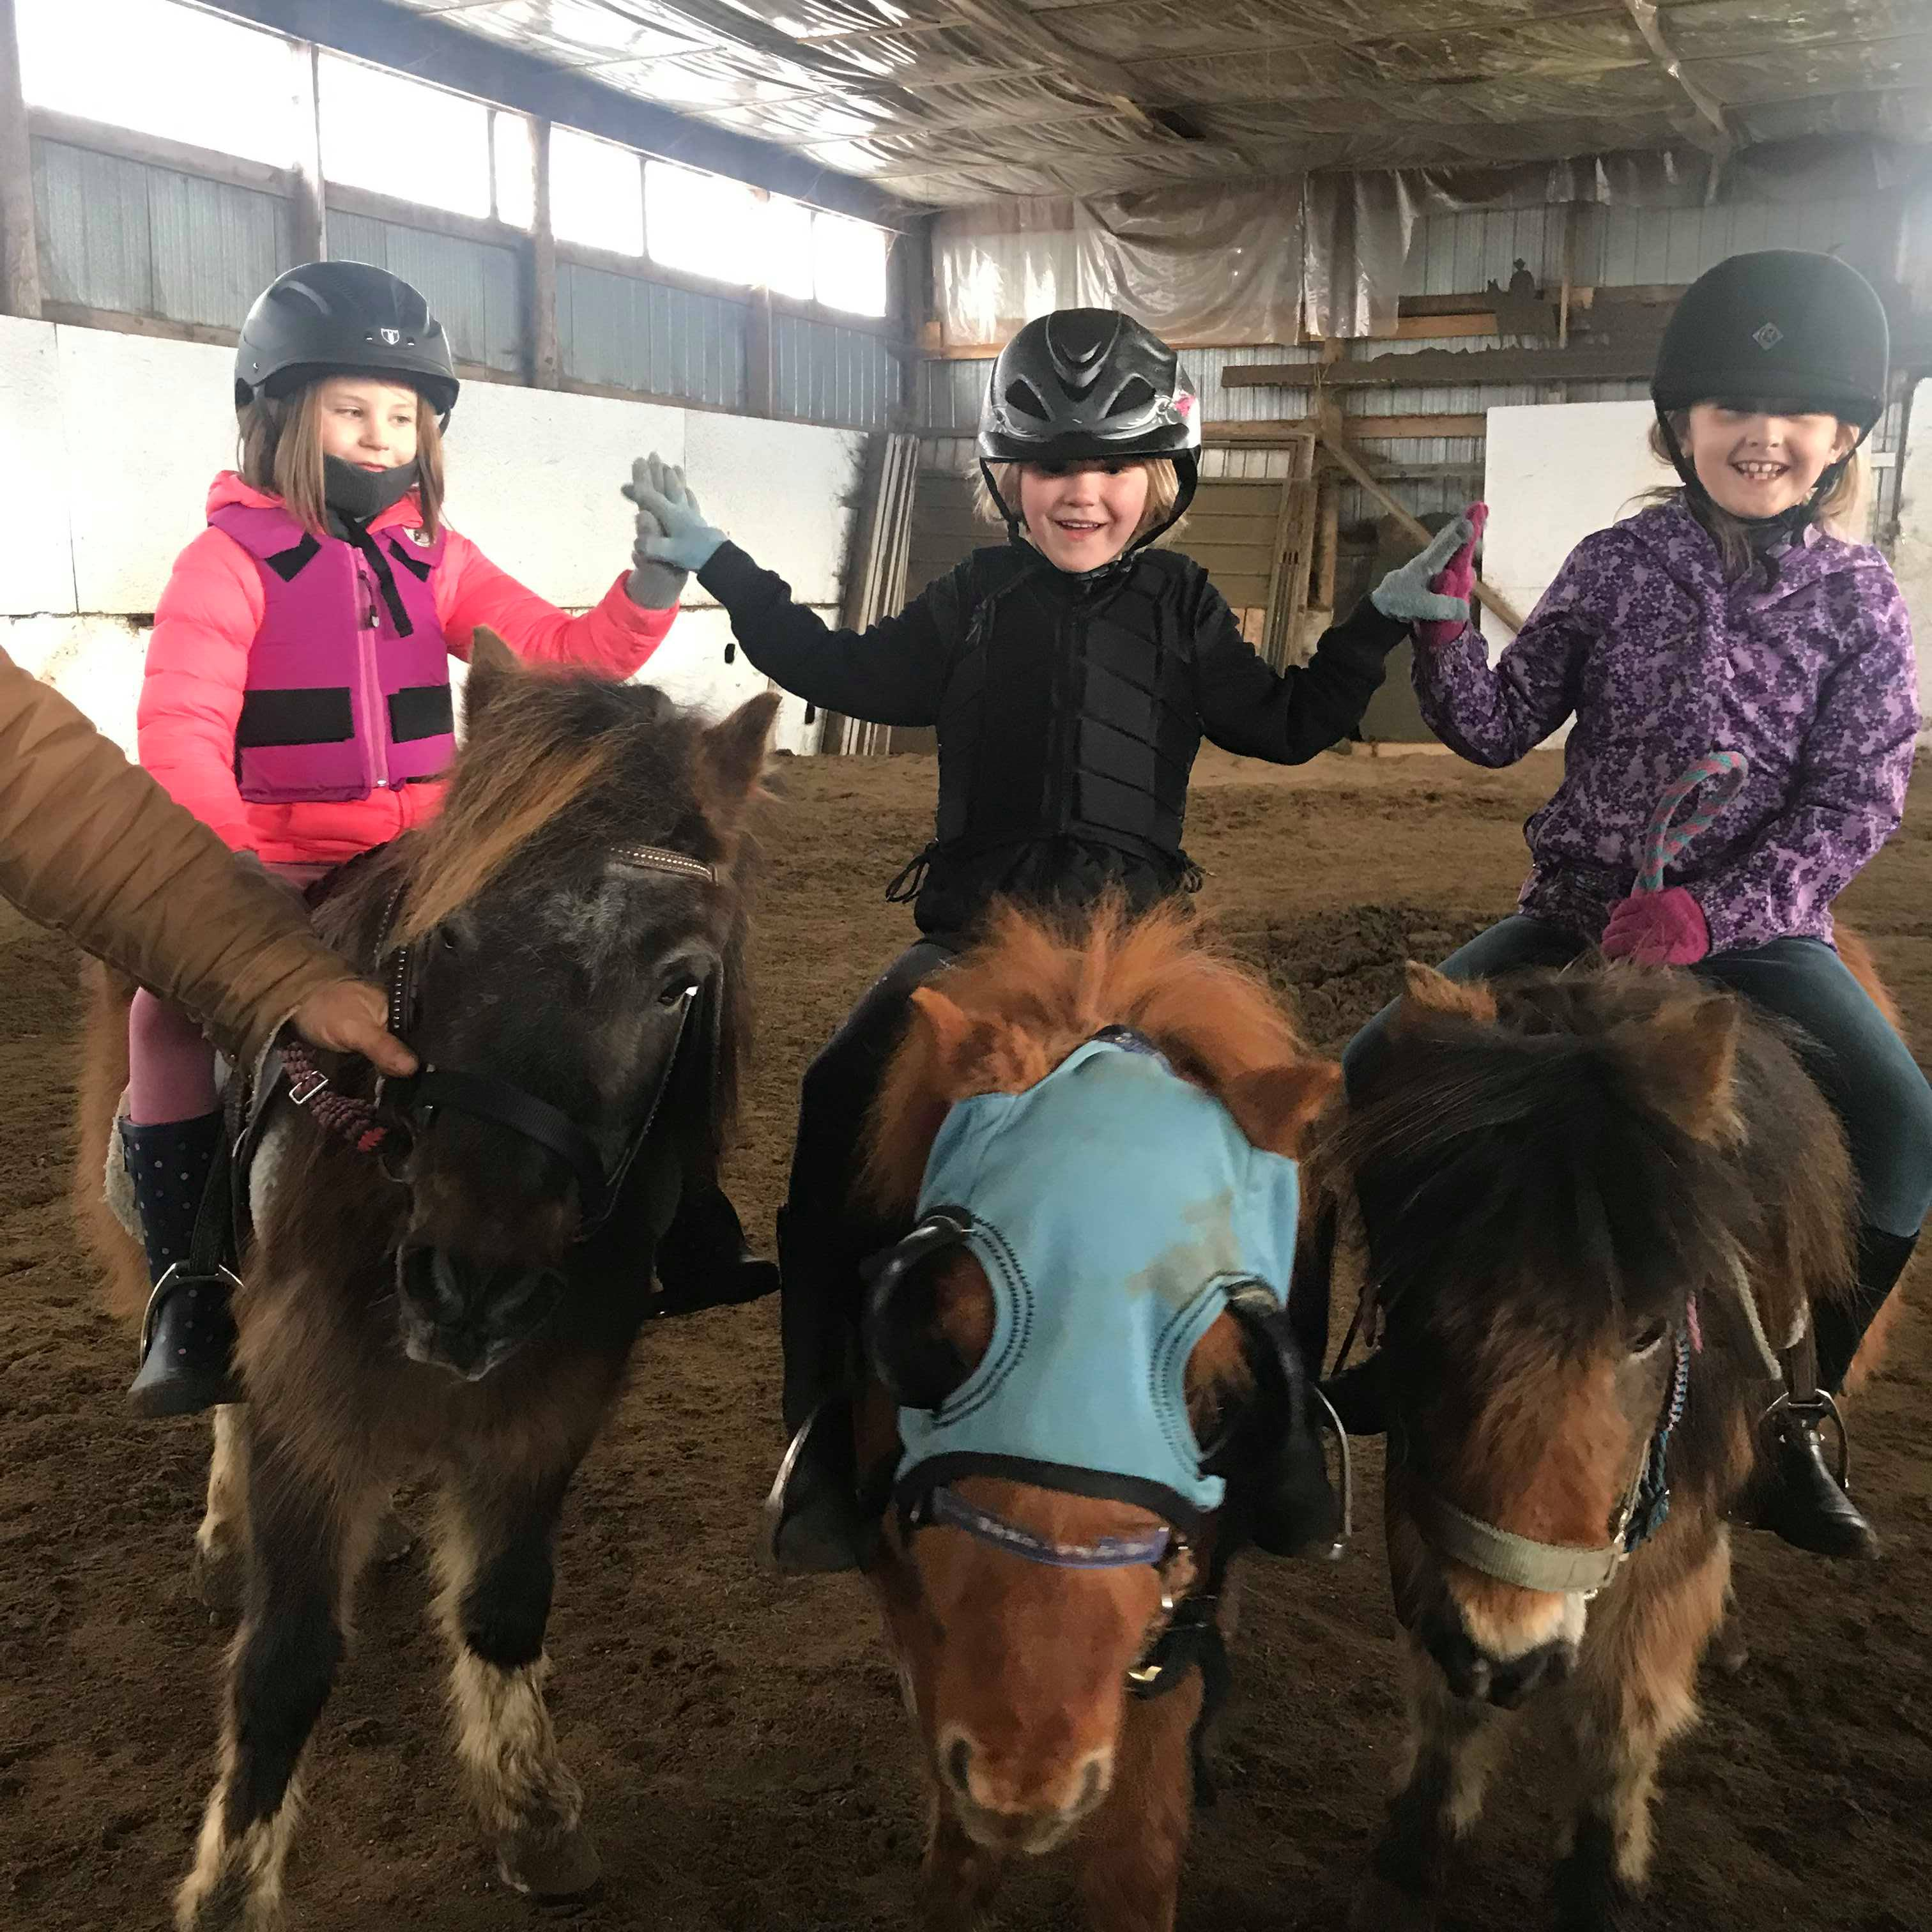 The smiles say it all for the kids in the Junior Jockeys of Flying Cross Ranch program (photo courtesy of Ray Sturgeon).